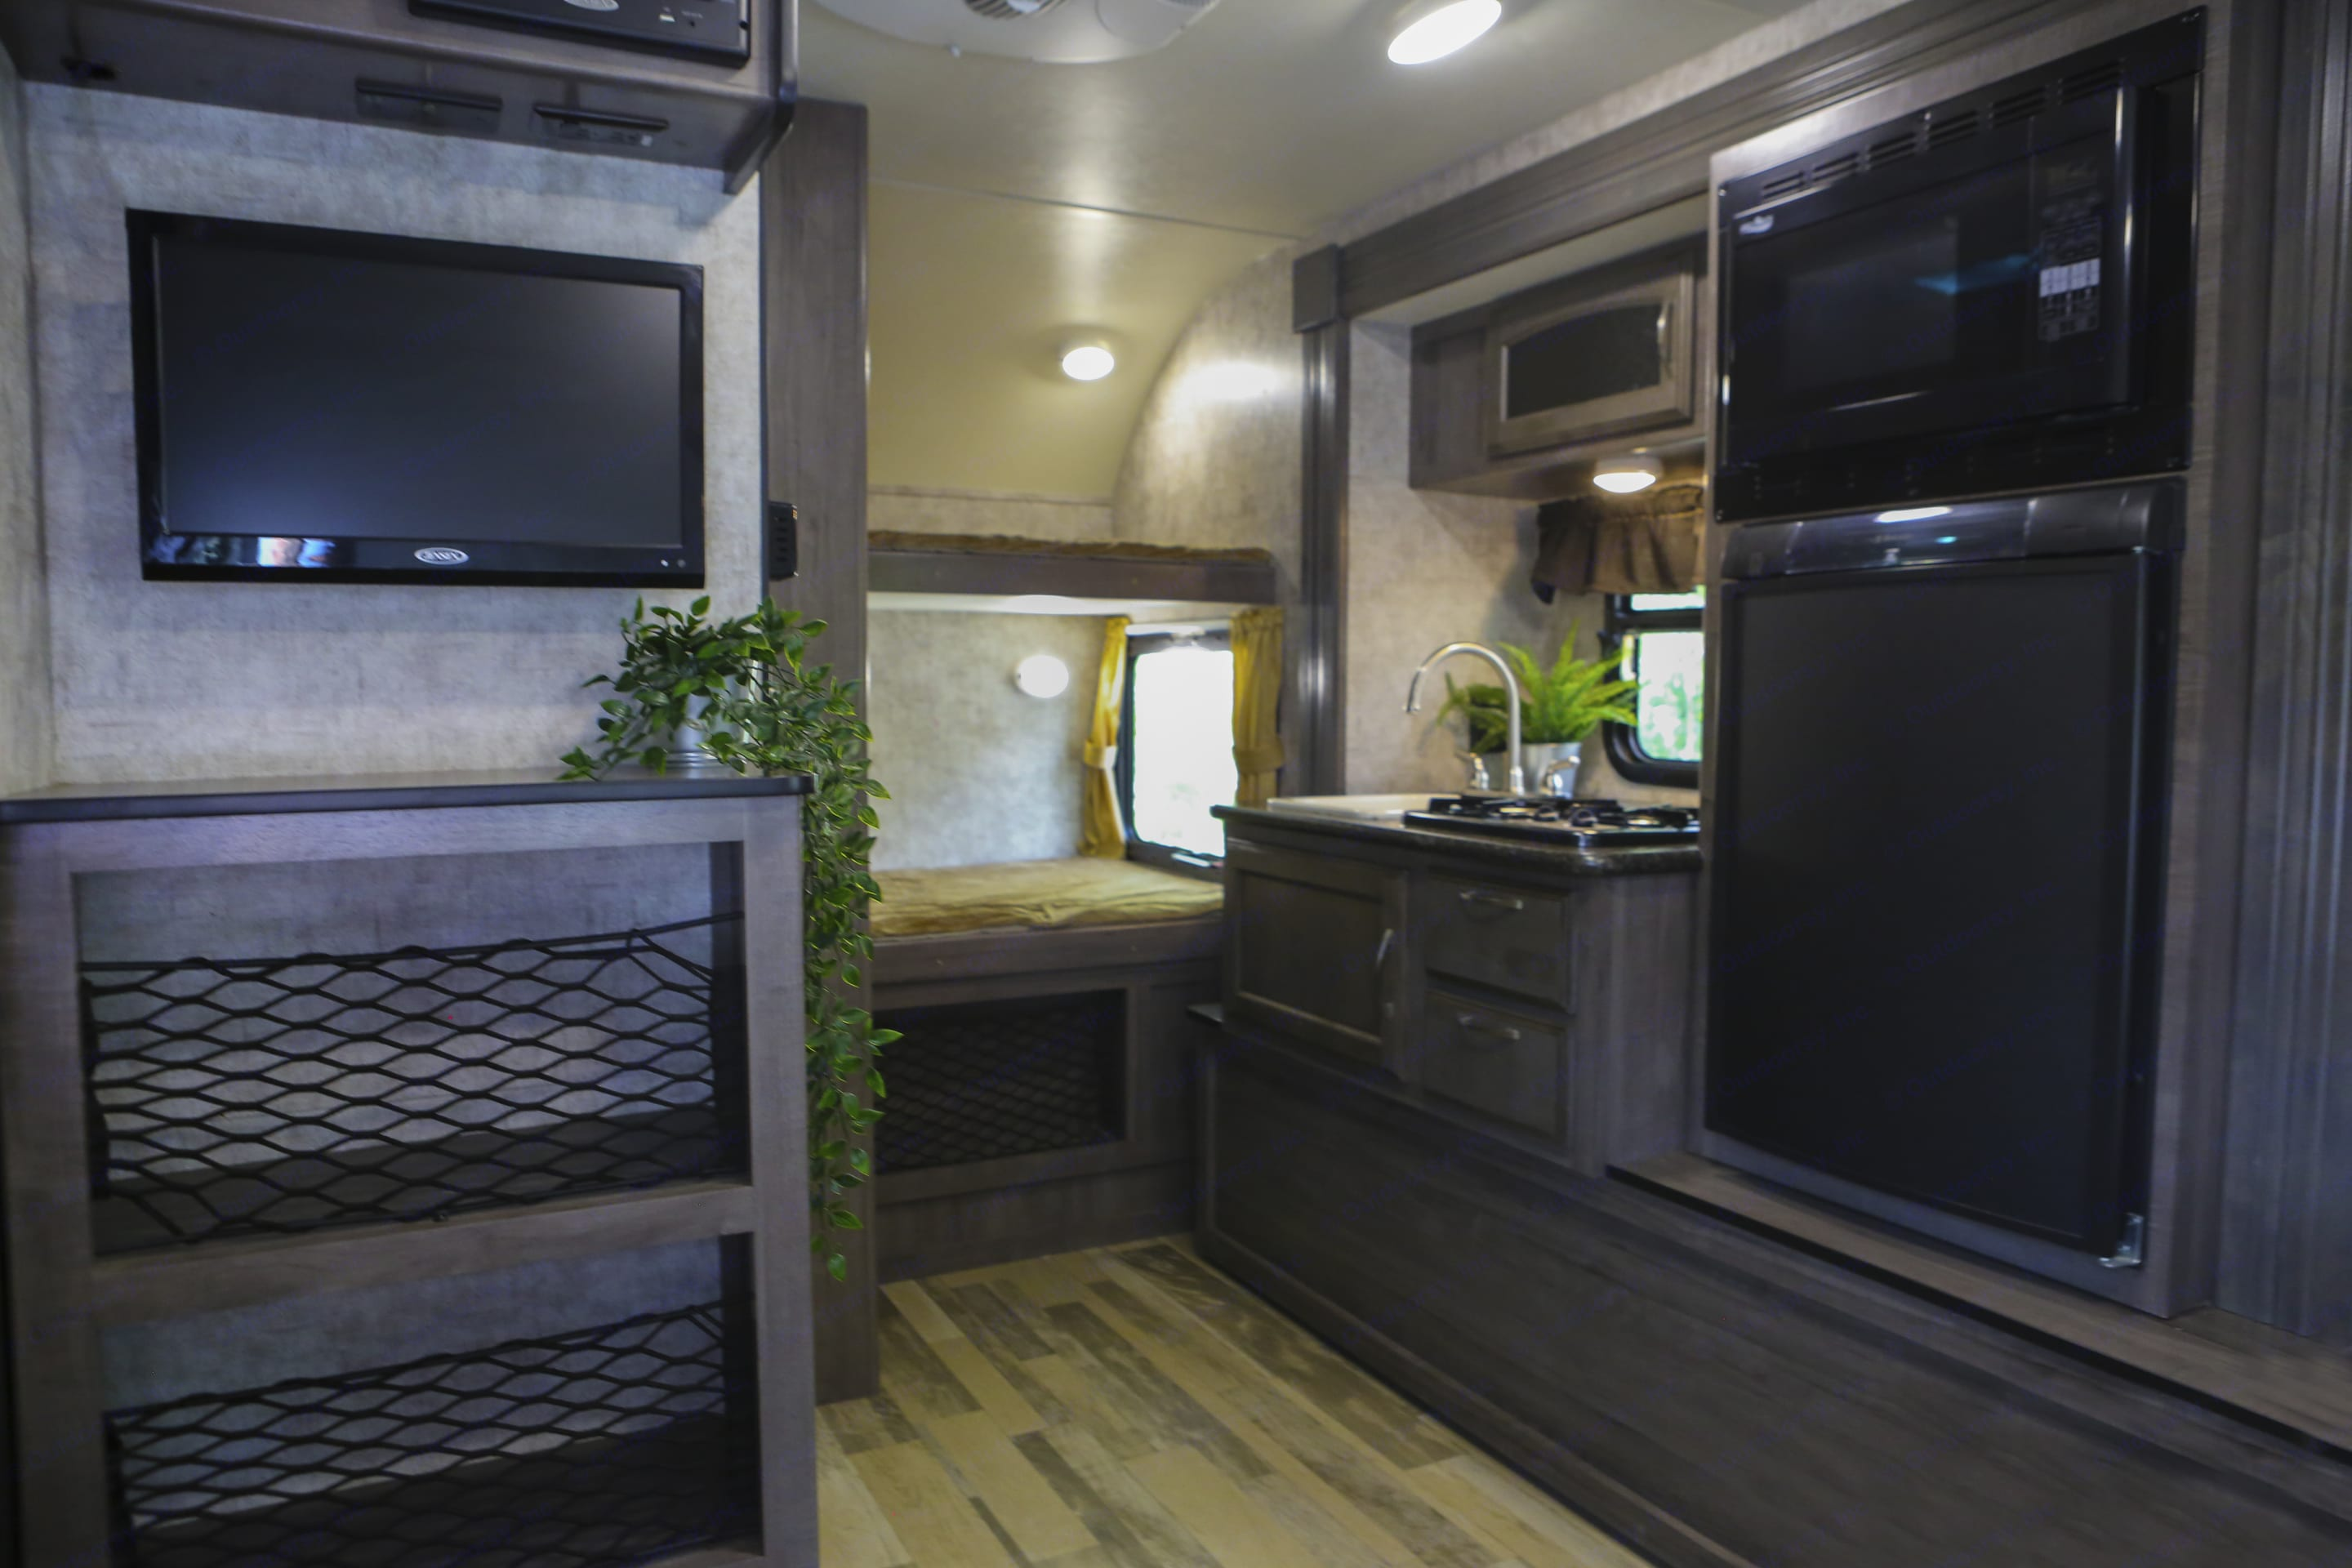 The refrigerator can run off 30 amp shore power or propane when no hooks ups are available. The heater also runs off propane gas.  . Winnebago Winnie Drop 2017